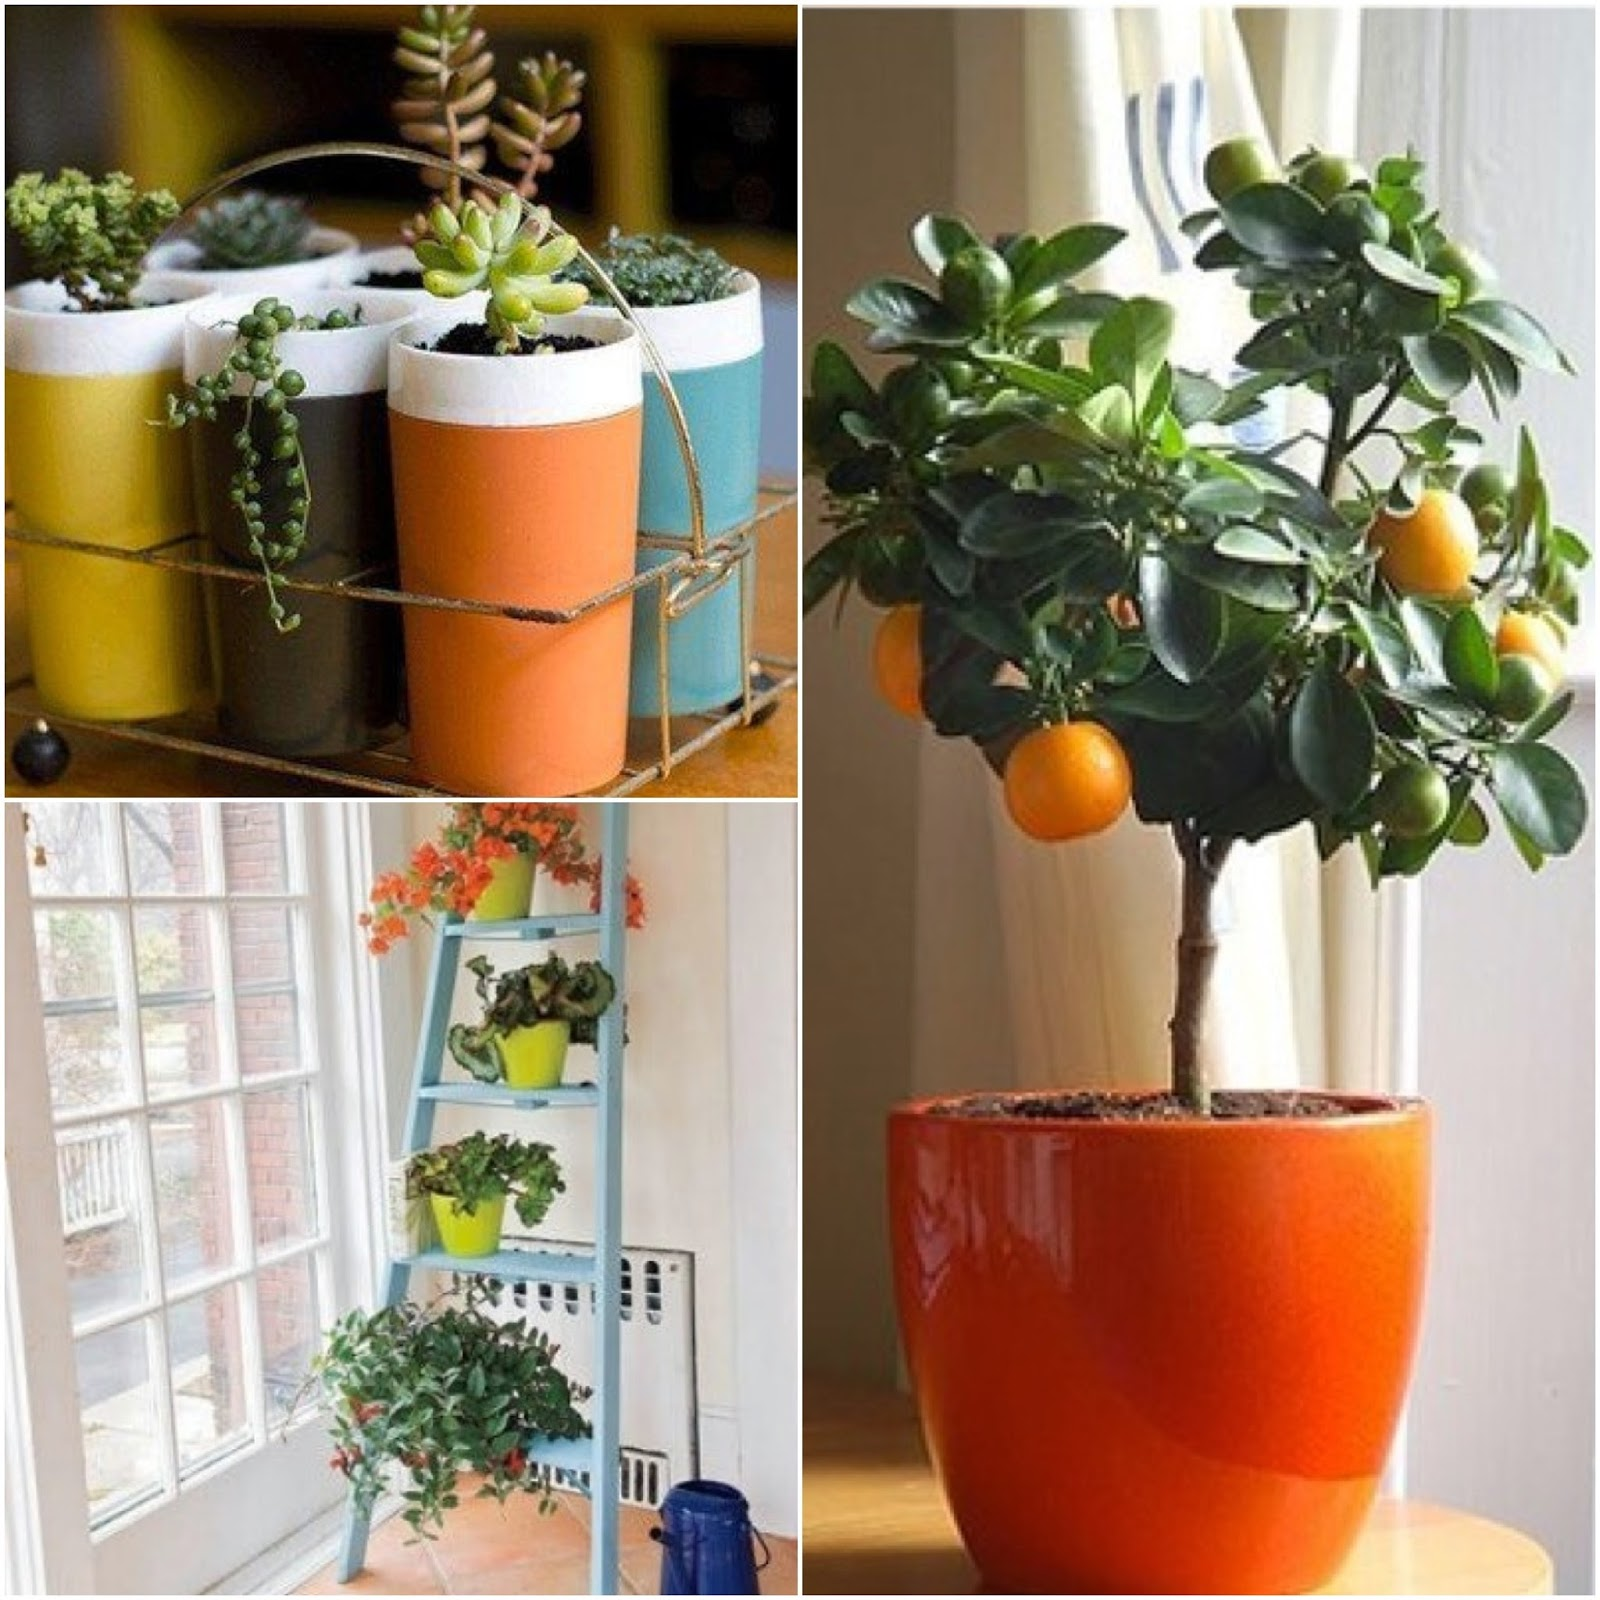 Maya doyle for Indoor gardening meaning